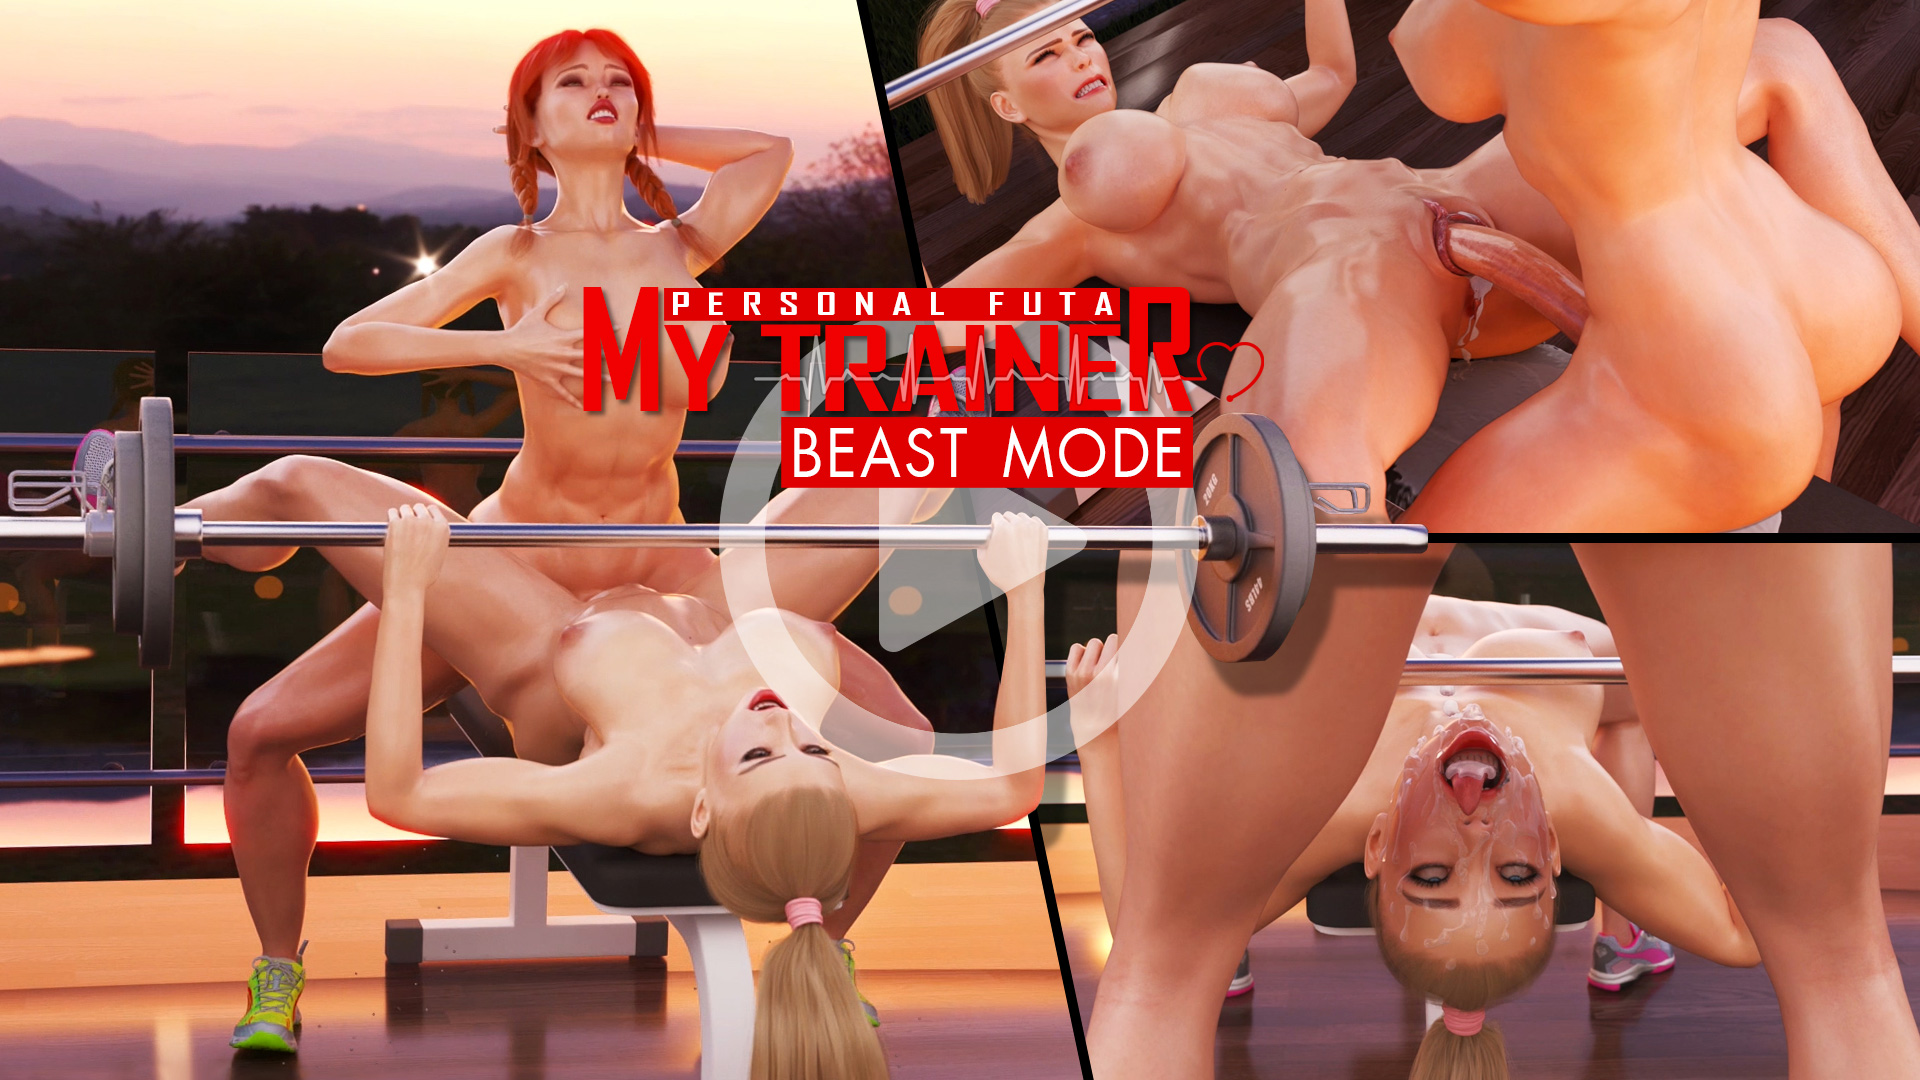 My Personal Futa Trainer - Beast Mode animation poster